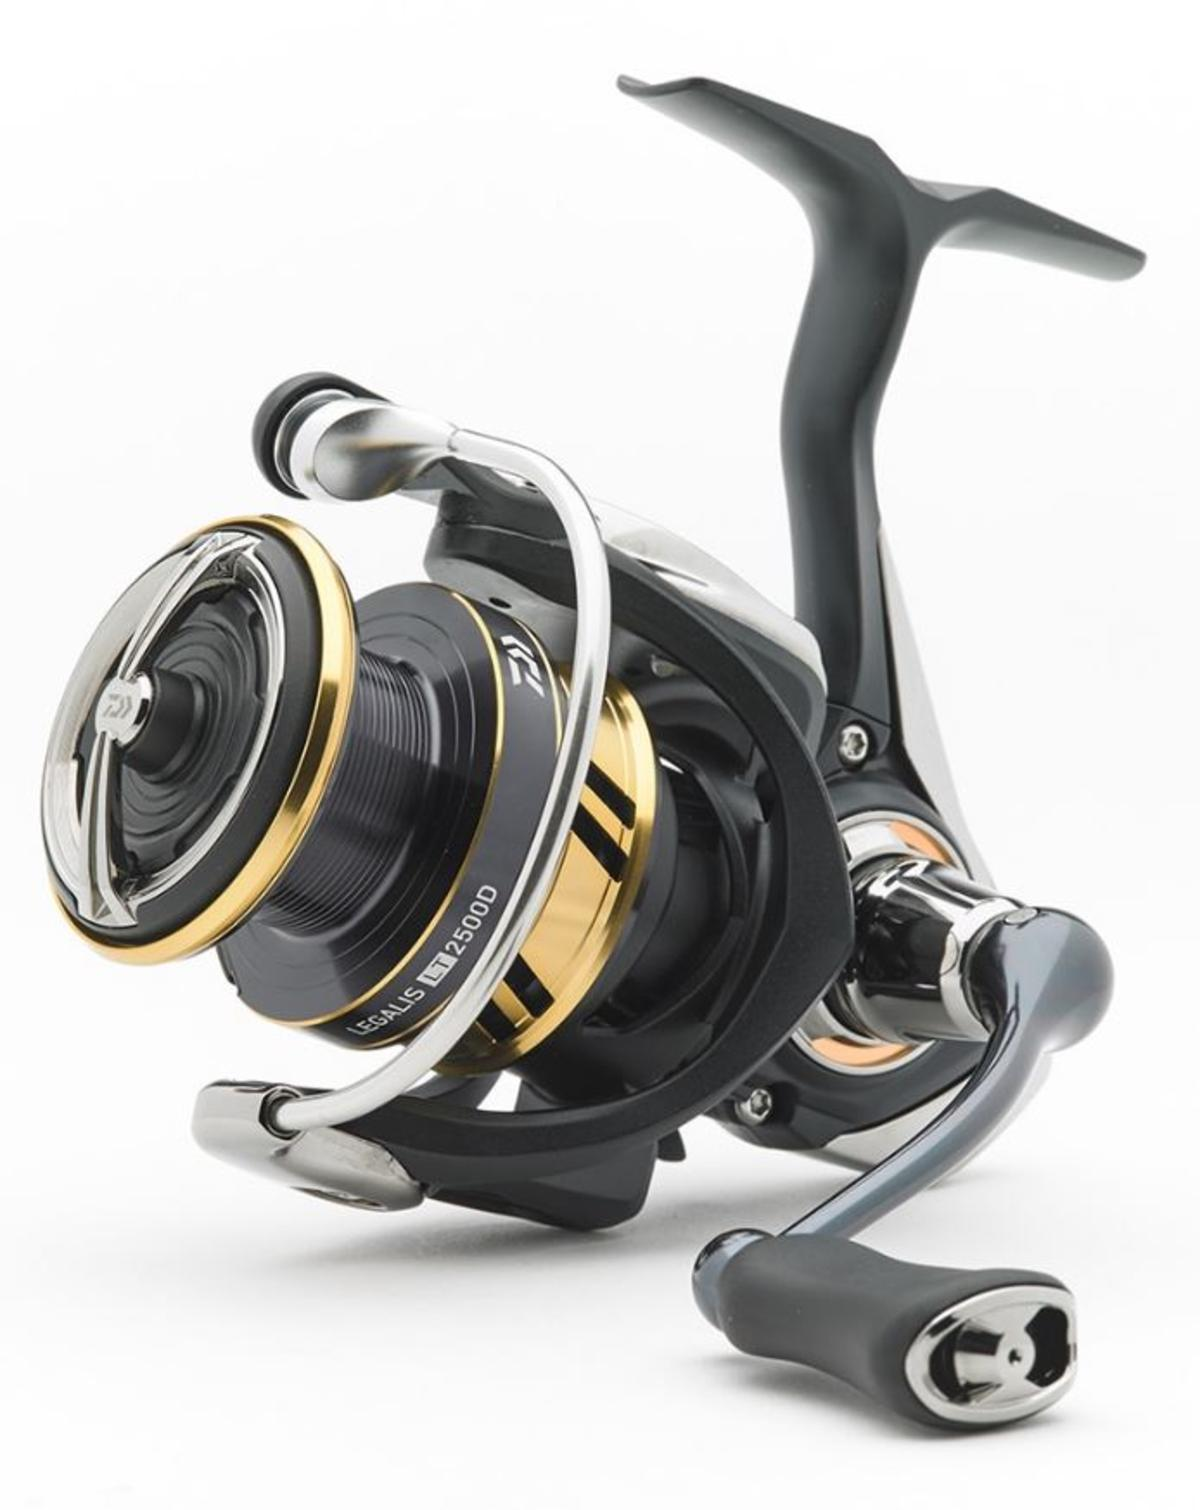 New Daiwa 17 Legalis LT Fishing Spinning Reels clearance special